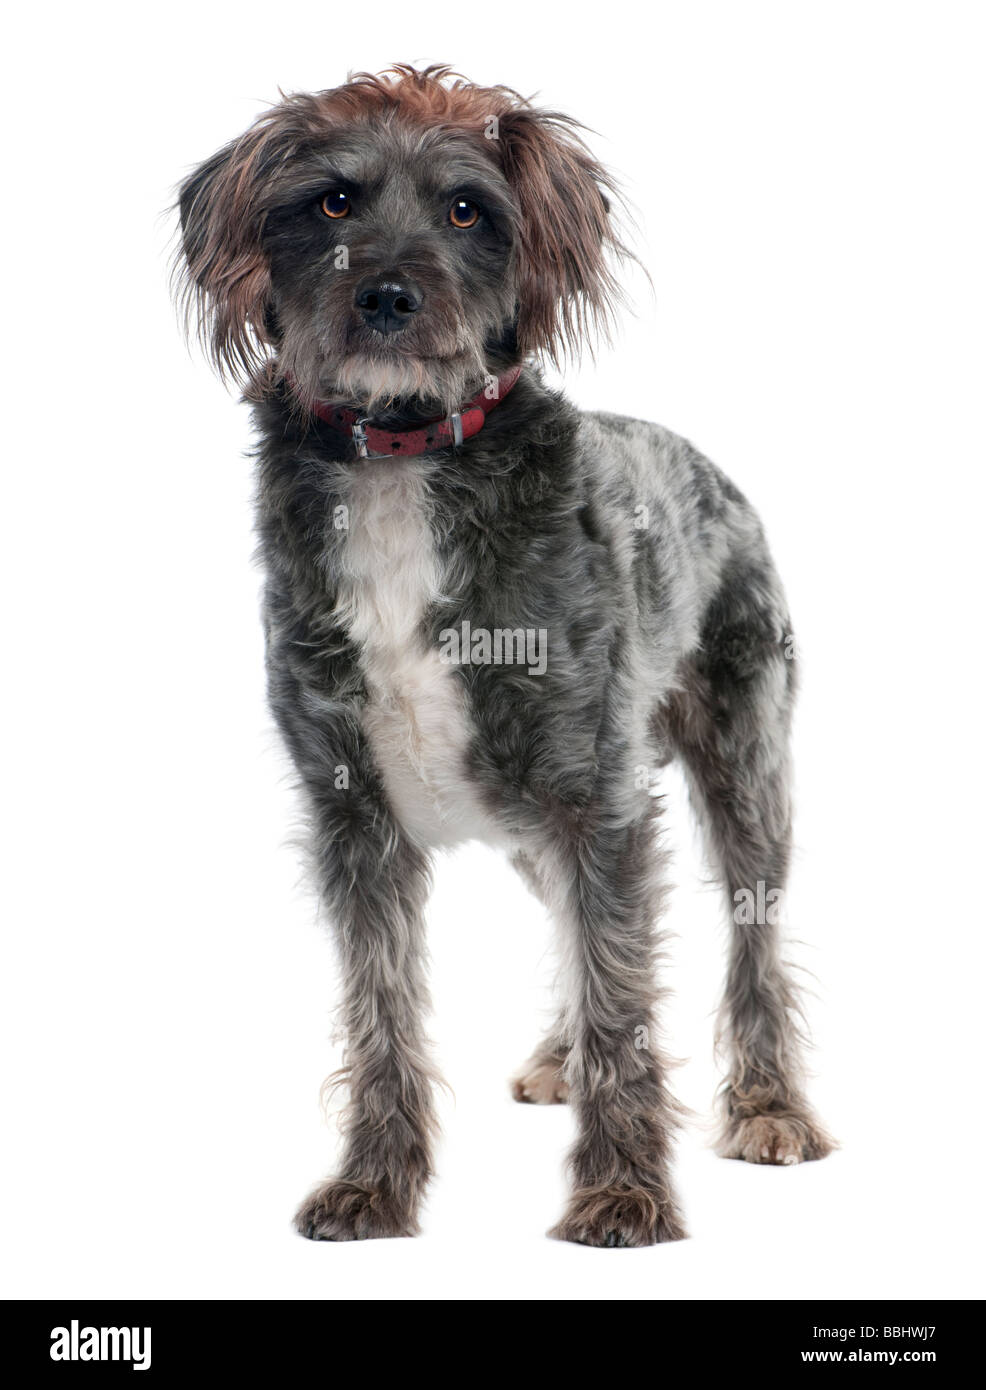 griffon 3 years old in front of a white background - Stock Image